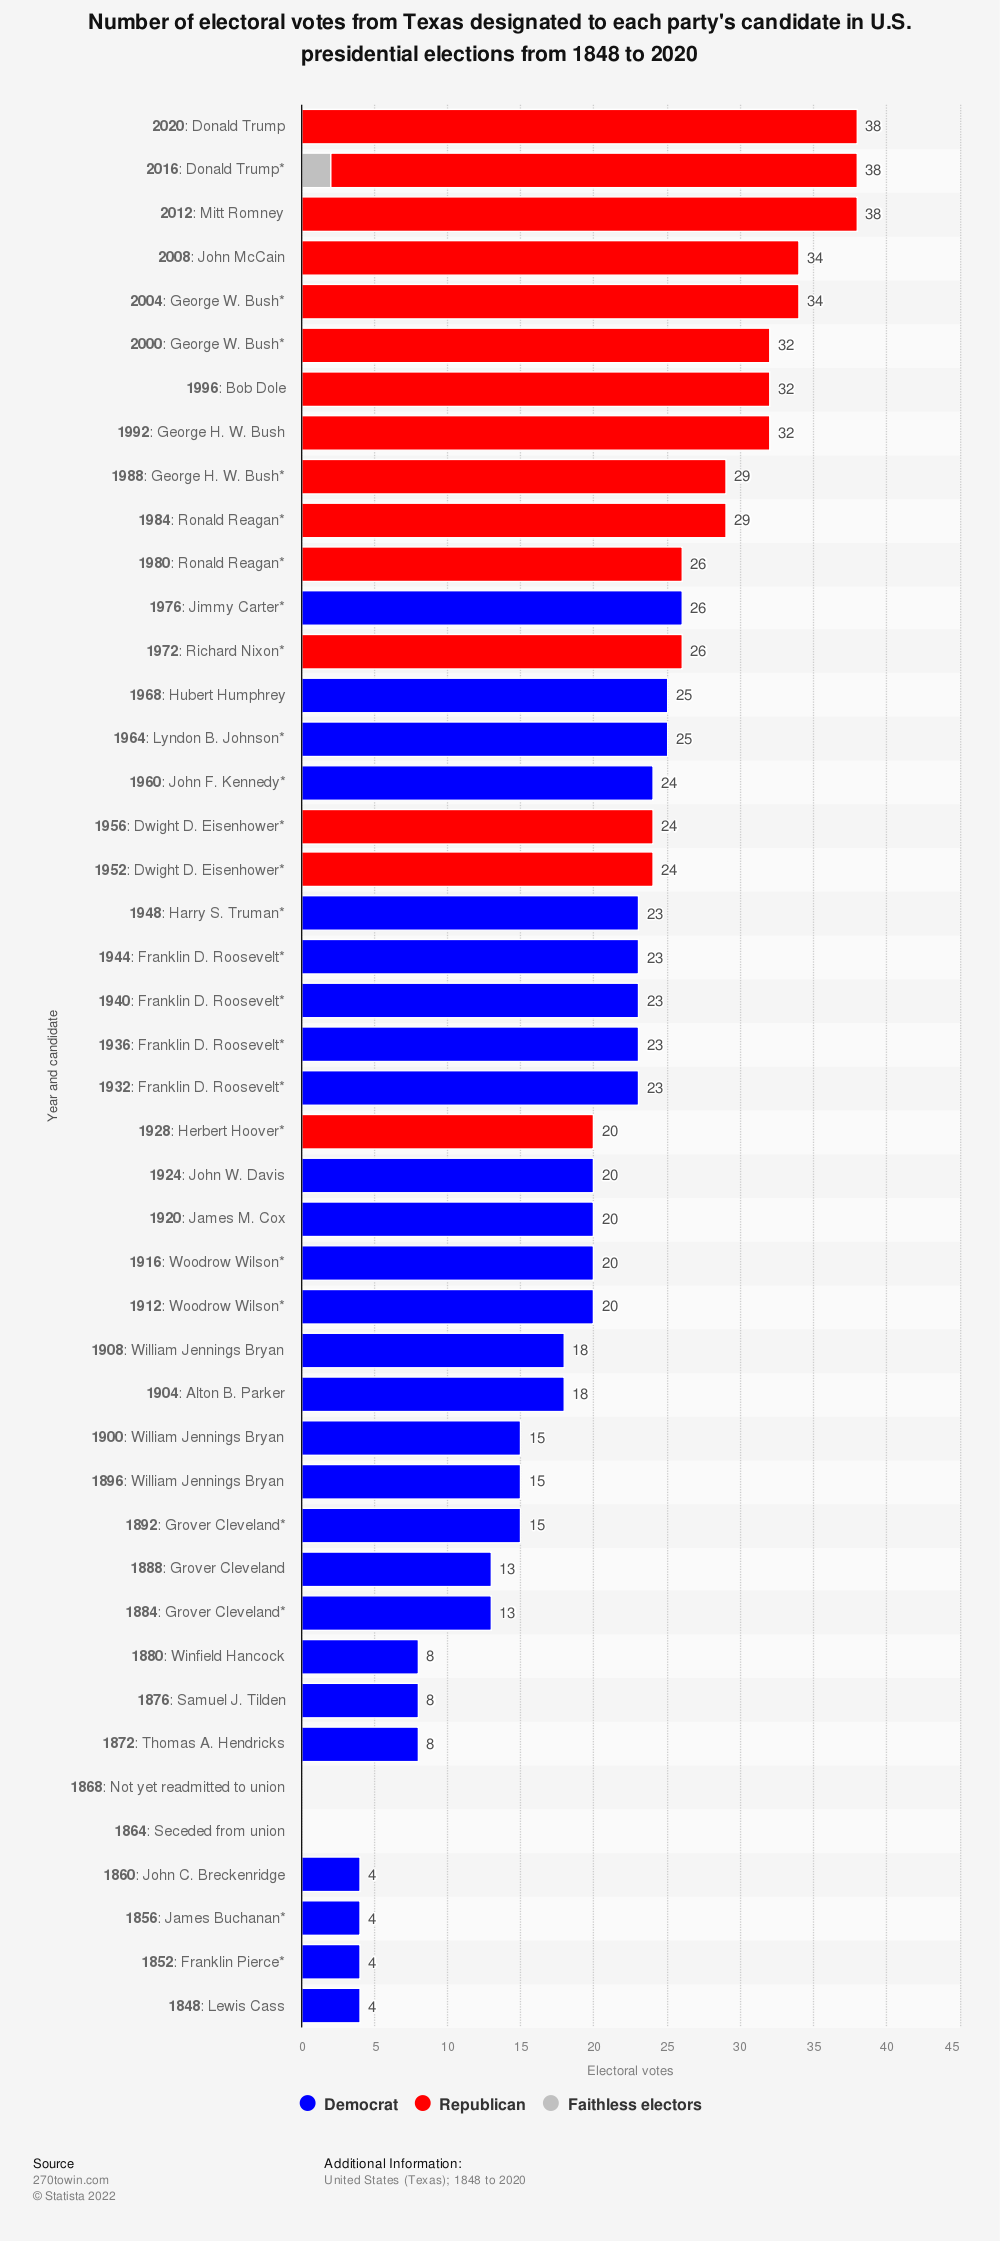 Statistic: Number of electoral votes from Texas designated to each party's candidate in U.S. presidential elections from 1848 to 2020 | Statista